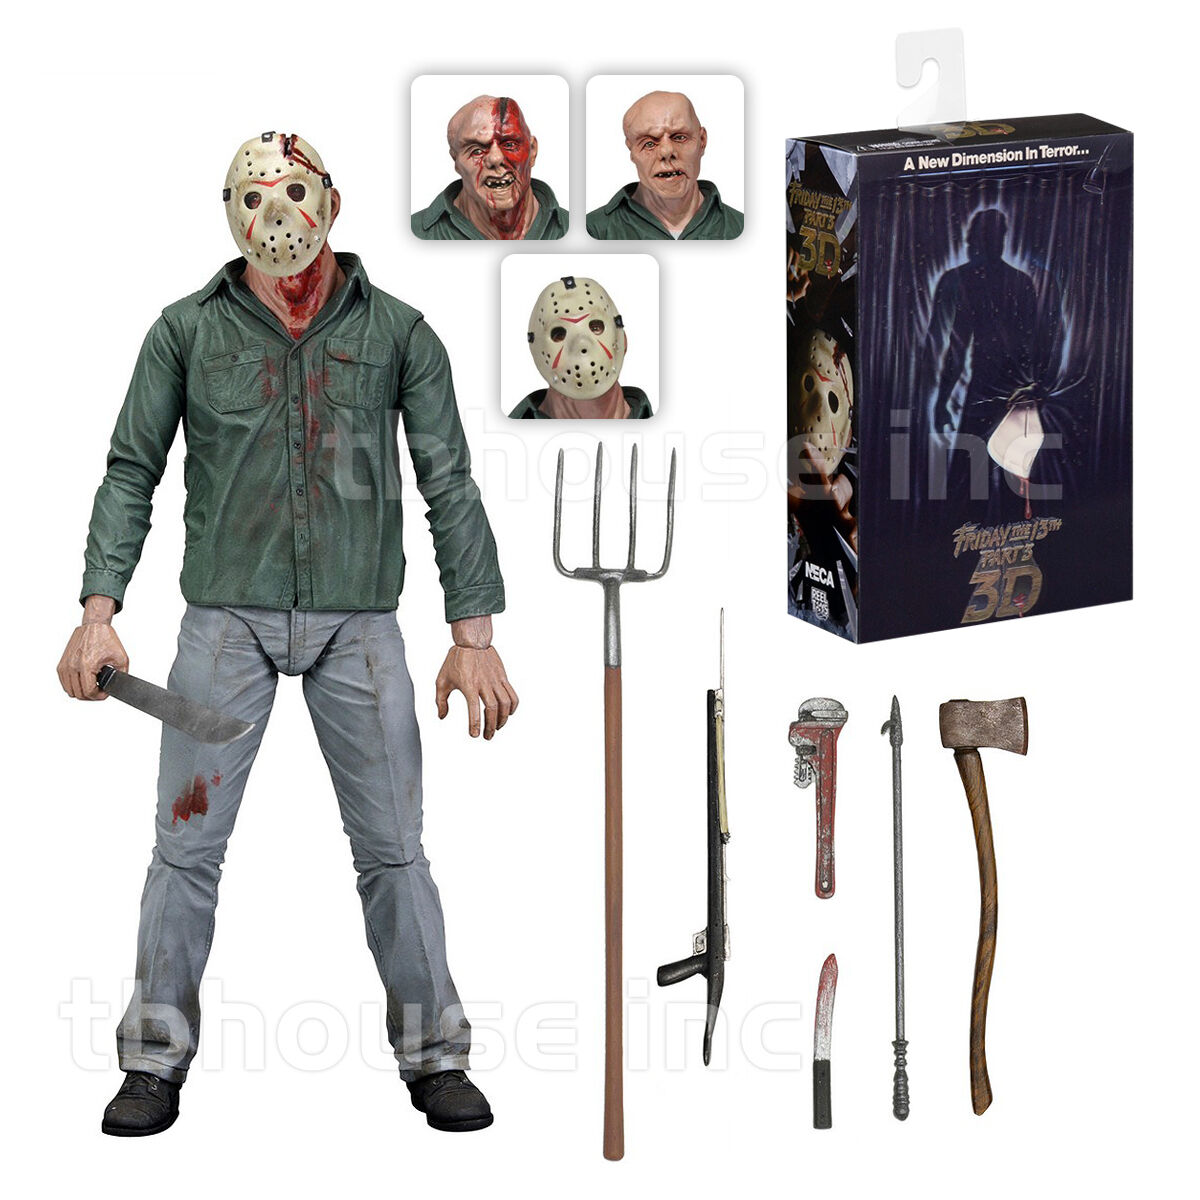 7  ULTIMATE JASON VOORHEES figure FRIDAY THE 13TH action PART 3 III set NECA 3D